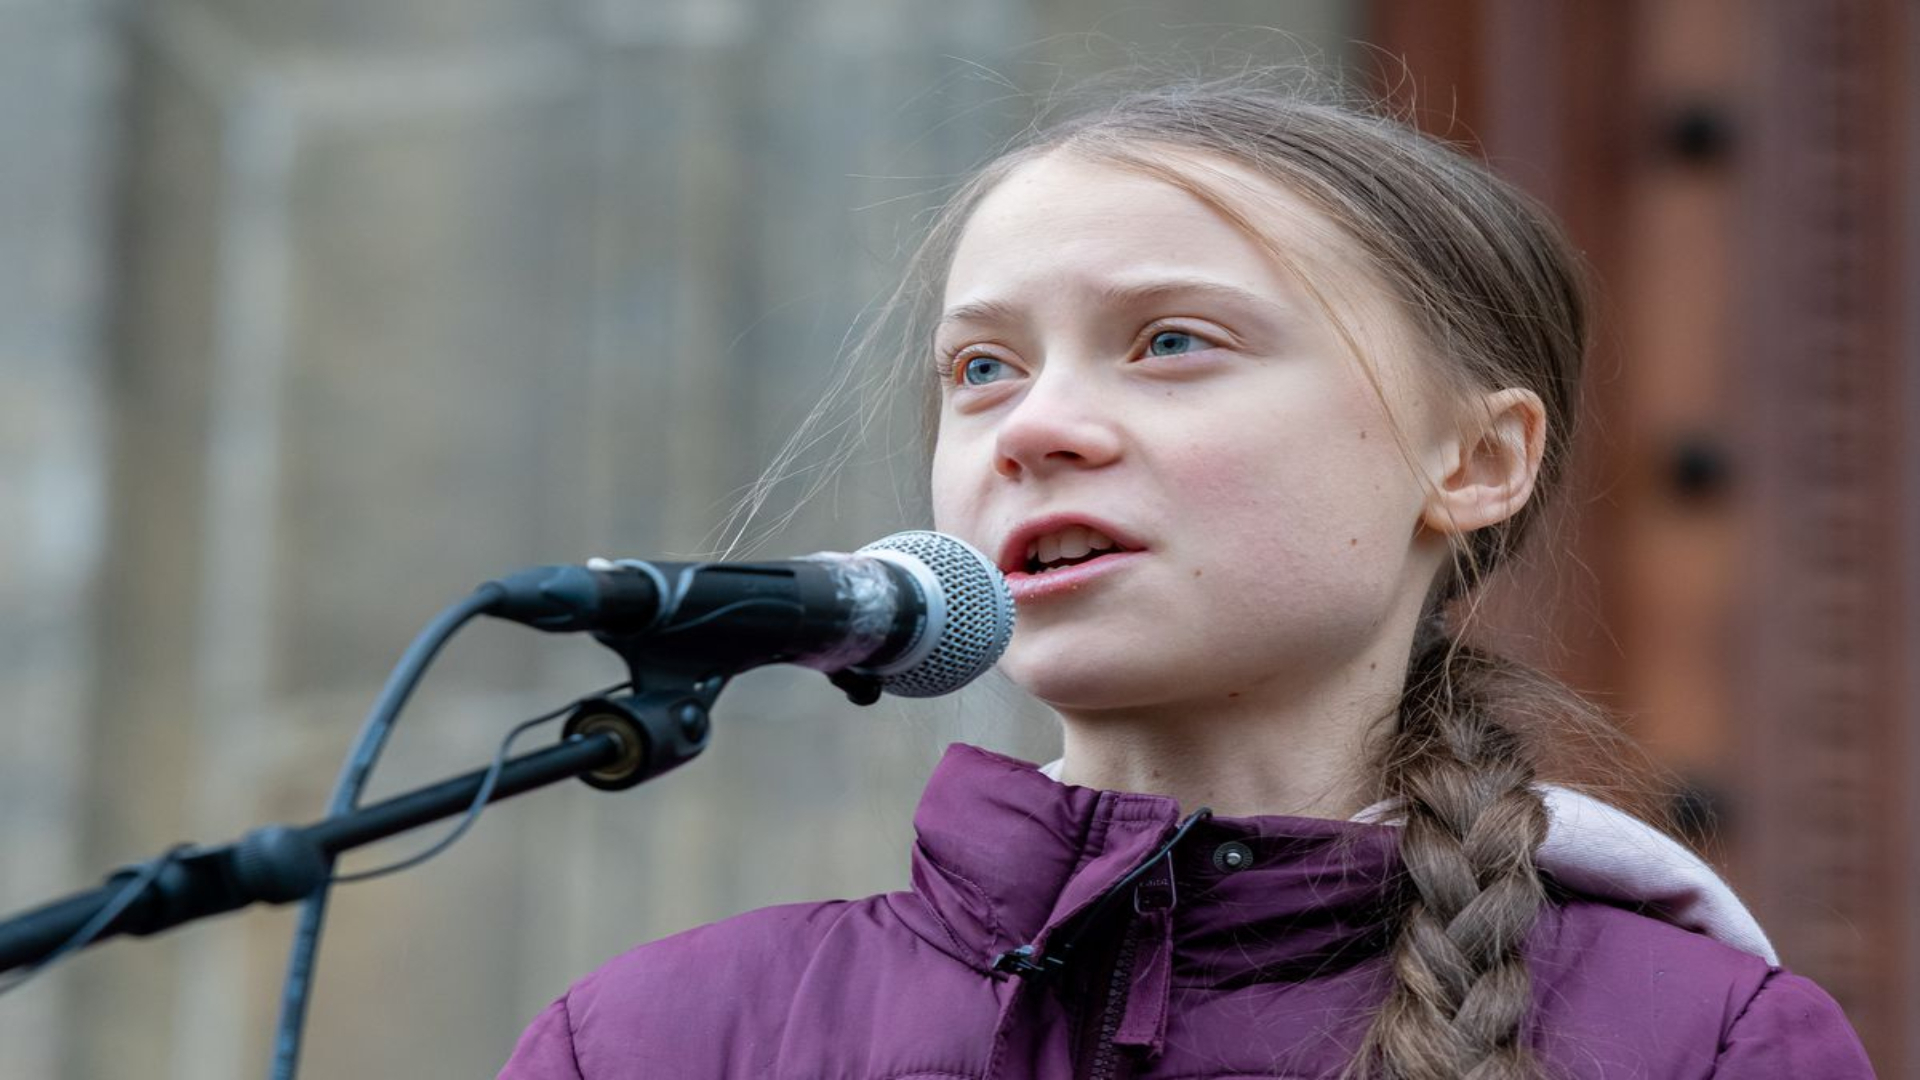 Greta Thunberg challenges world leaders on climate change